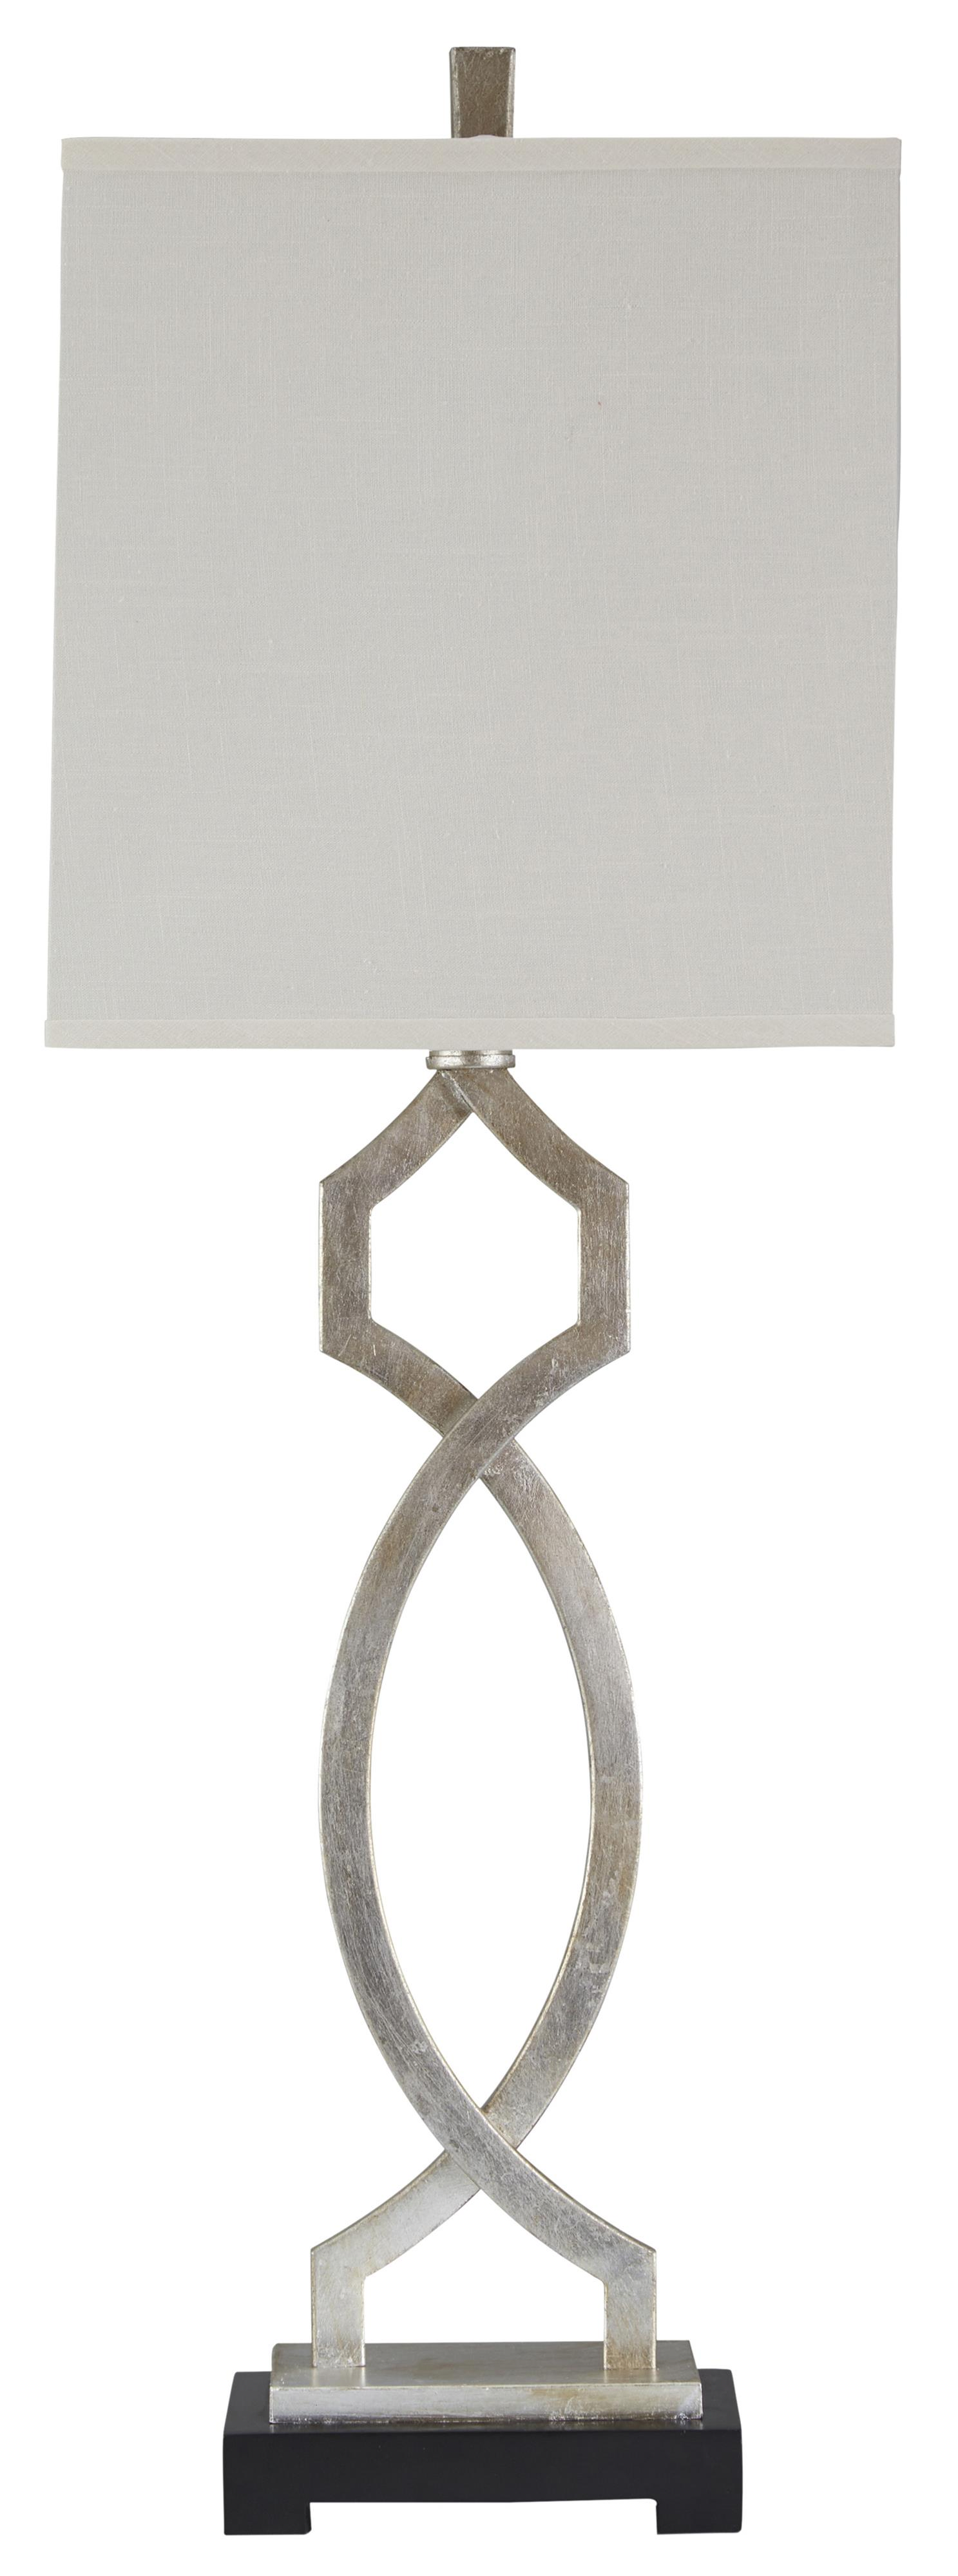 Lamps - Traditional Classics Taggert Metal Table Lamp by Signature Design at Fisher Home Furnishings